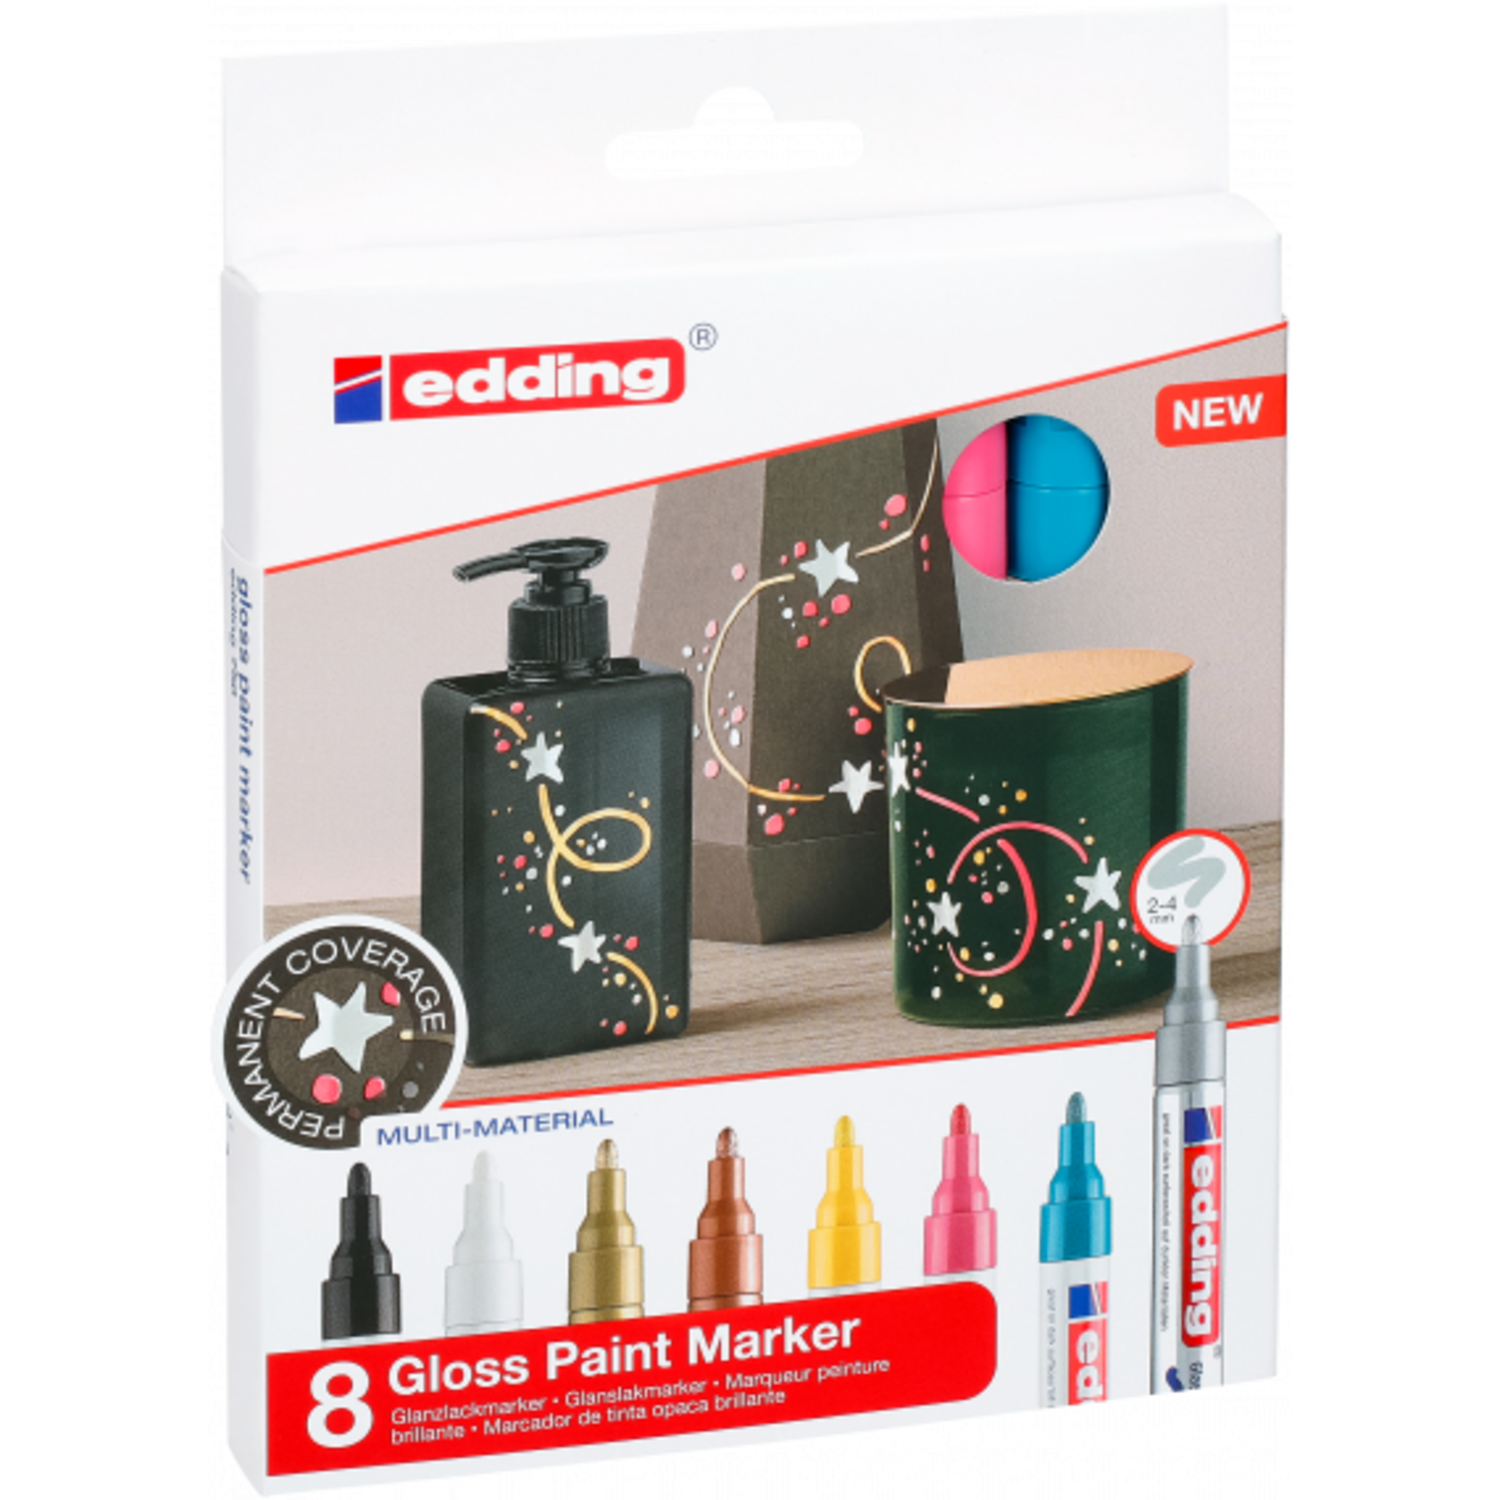 edding-750-glanslakmarker-assorti-set8-4-750-8-999-1-570x570_big_image